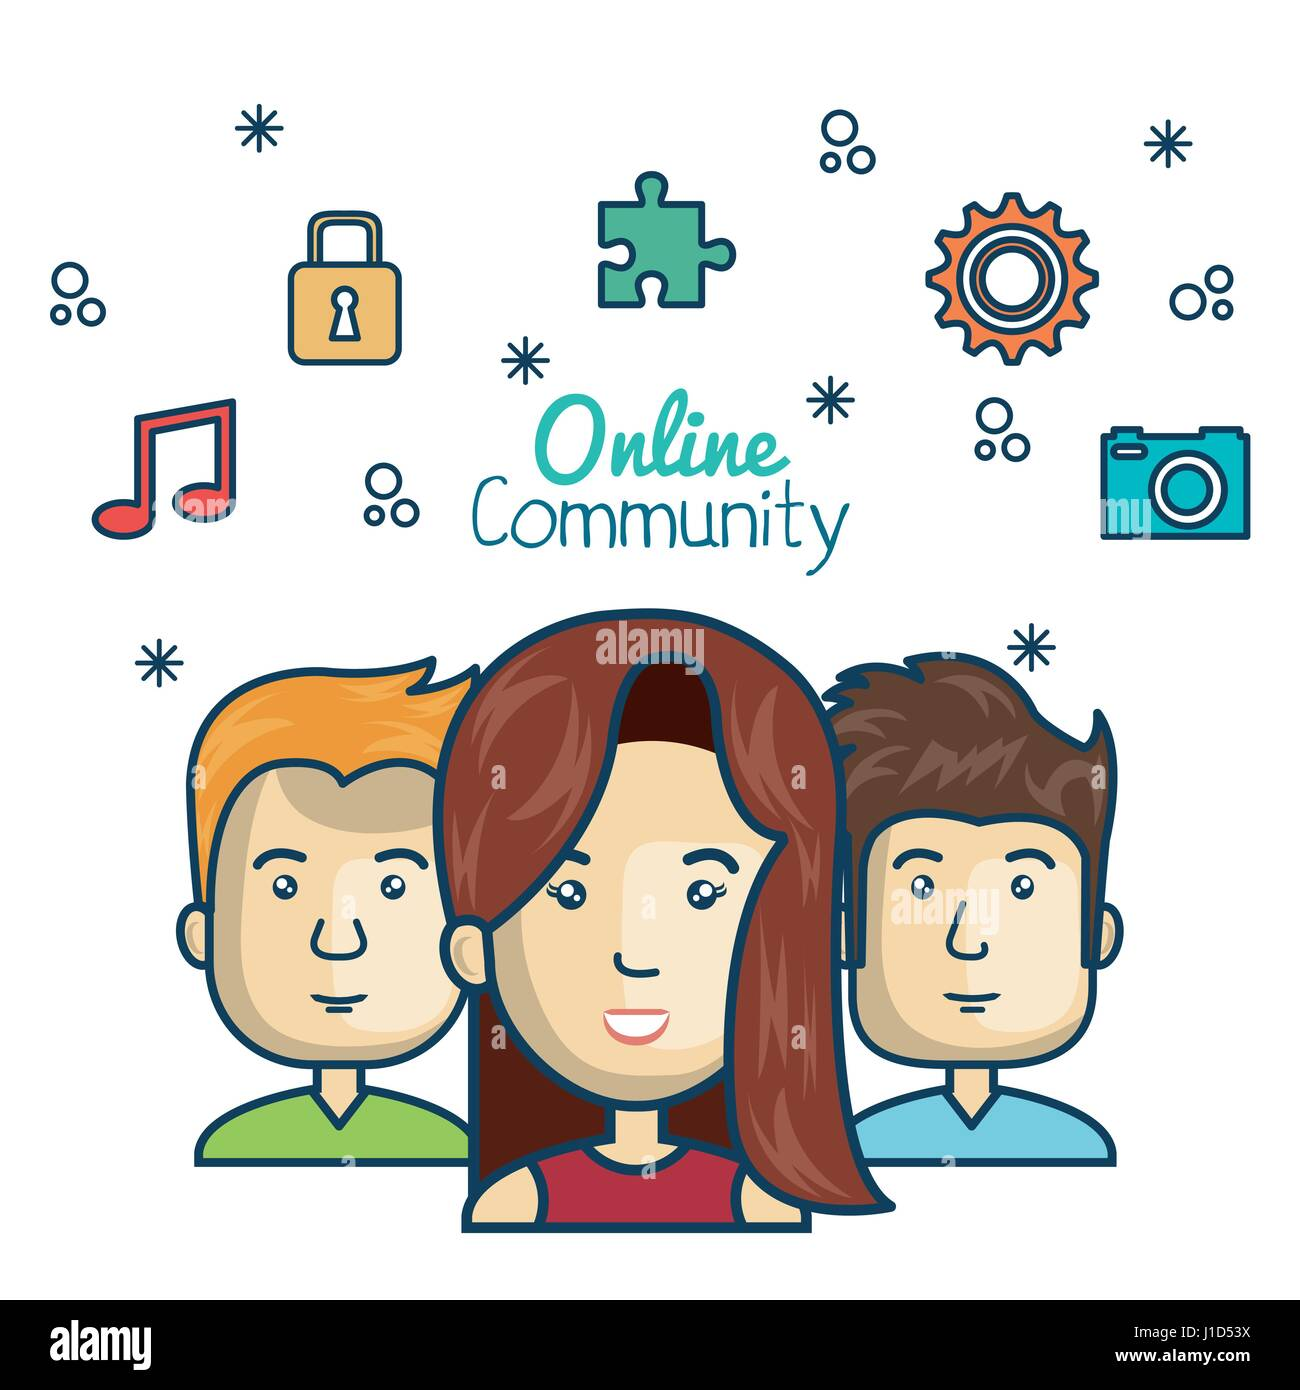 people community online concept with icons media - Stock Image